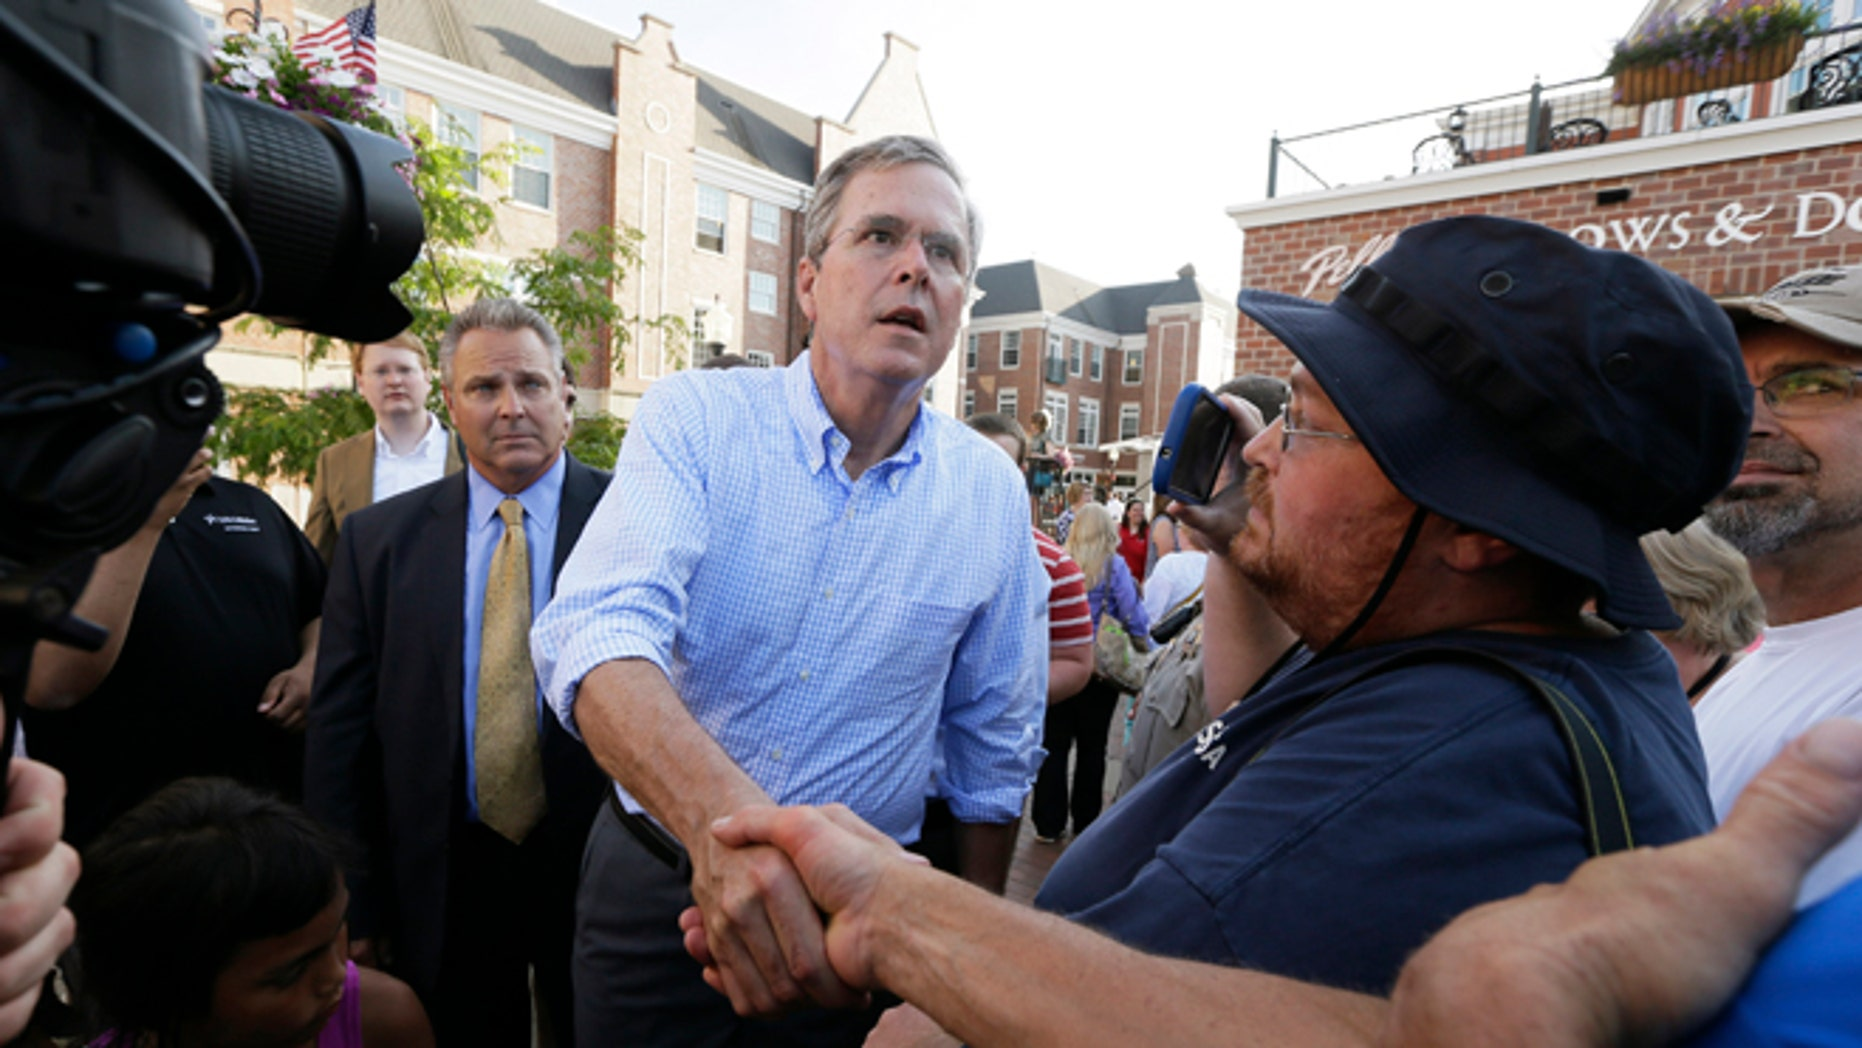 Republican presidential candidate Jeb Bush greets supporters following a town hall meeting, Wednesday, June 17, 2015, in Pella, Iowa. (AP Photo/Charlie Neibergall)